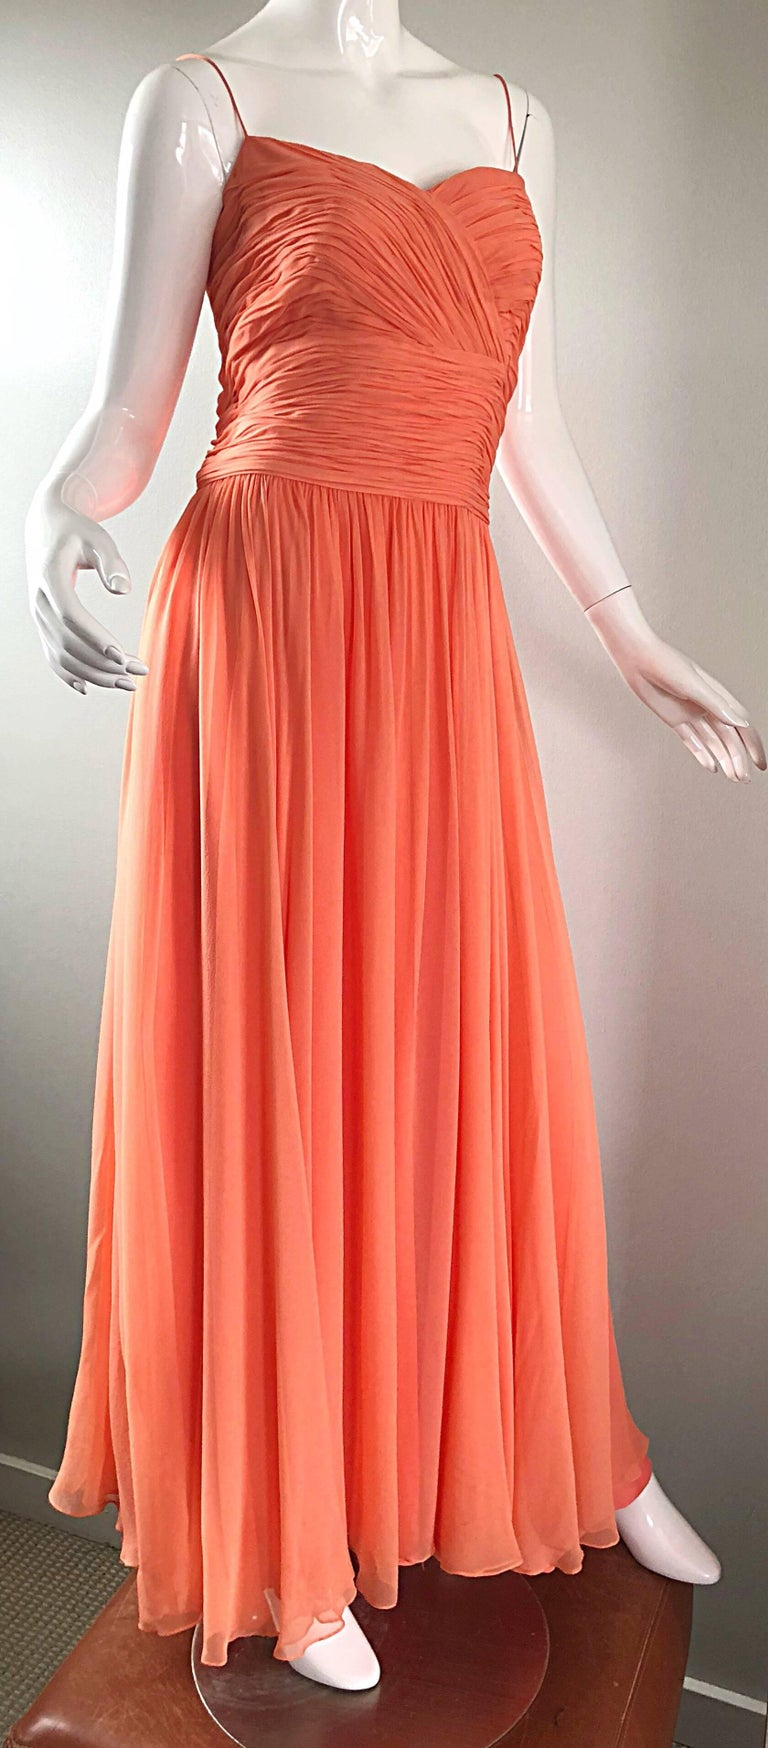 Gorgeous 1950s Saks 5th Ave. Salmon / Coral Pink Silk Chiffon Vintage 50s Gown For Sale 10